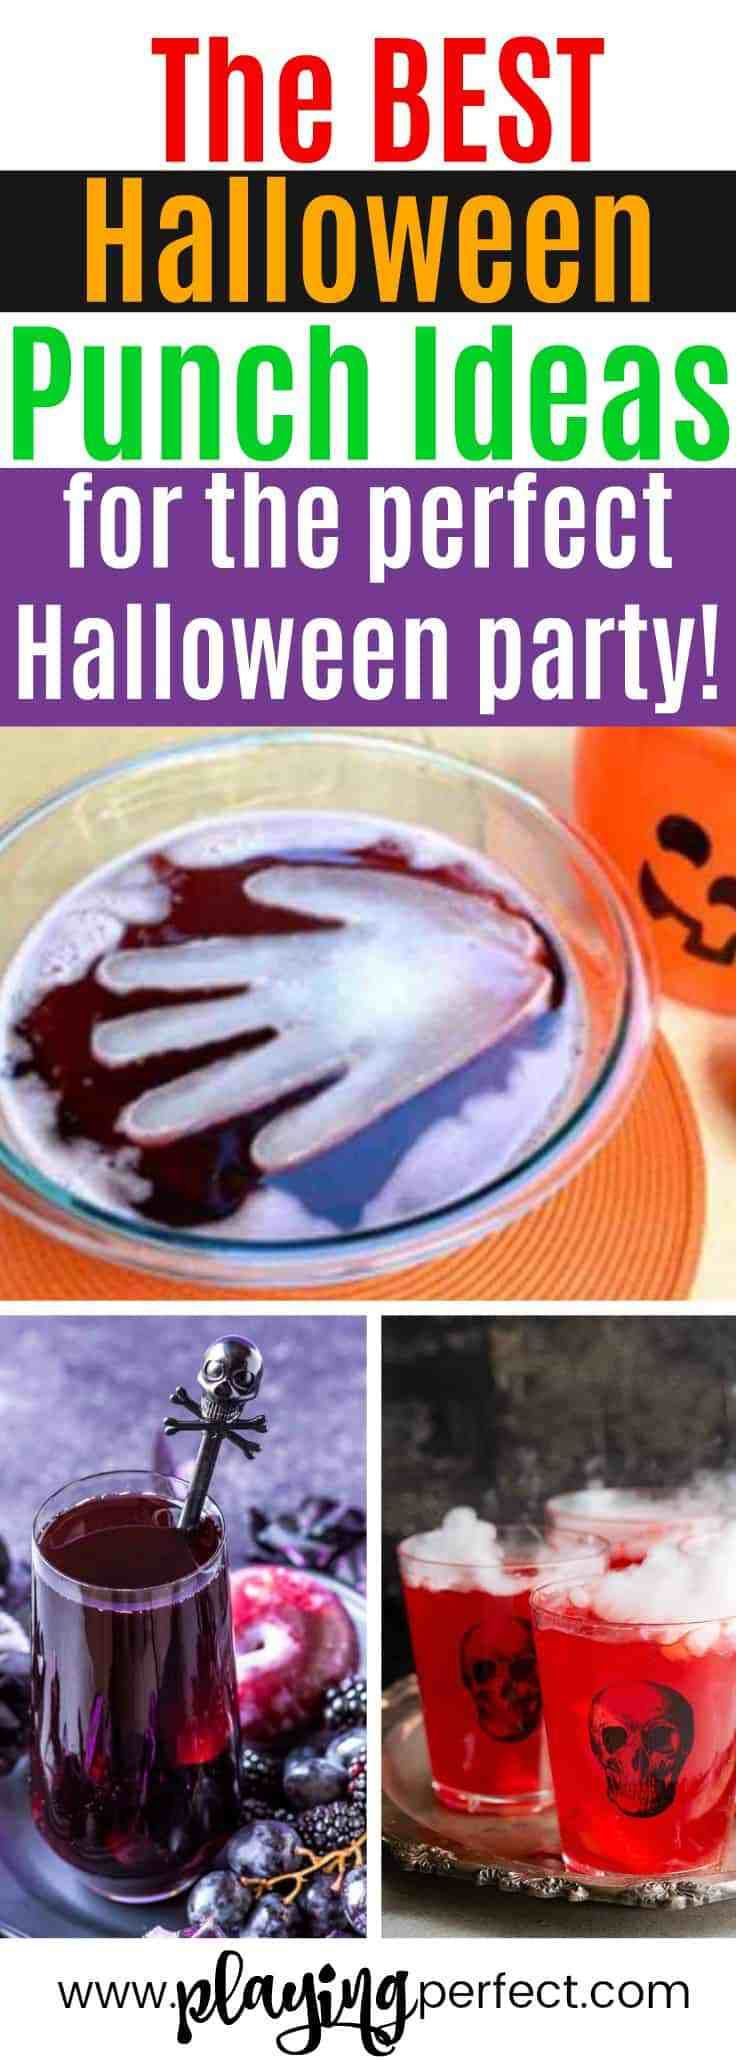 halloween punch ideas that will be the most deadly delight at the